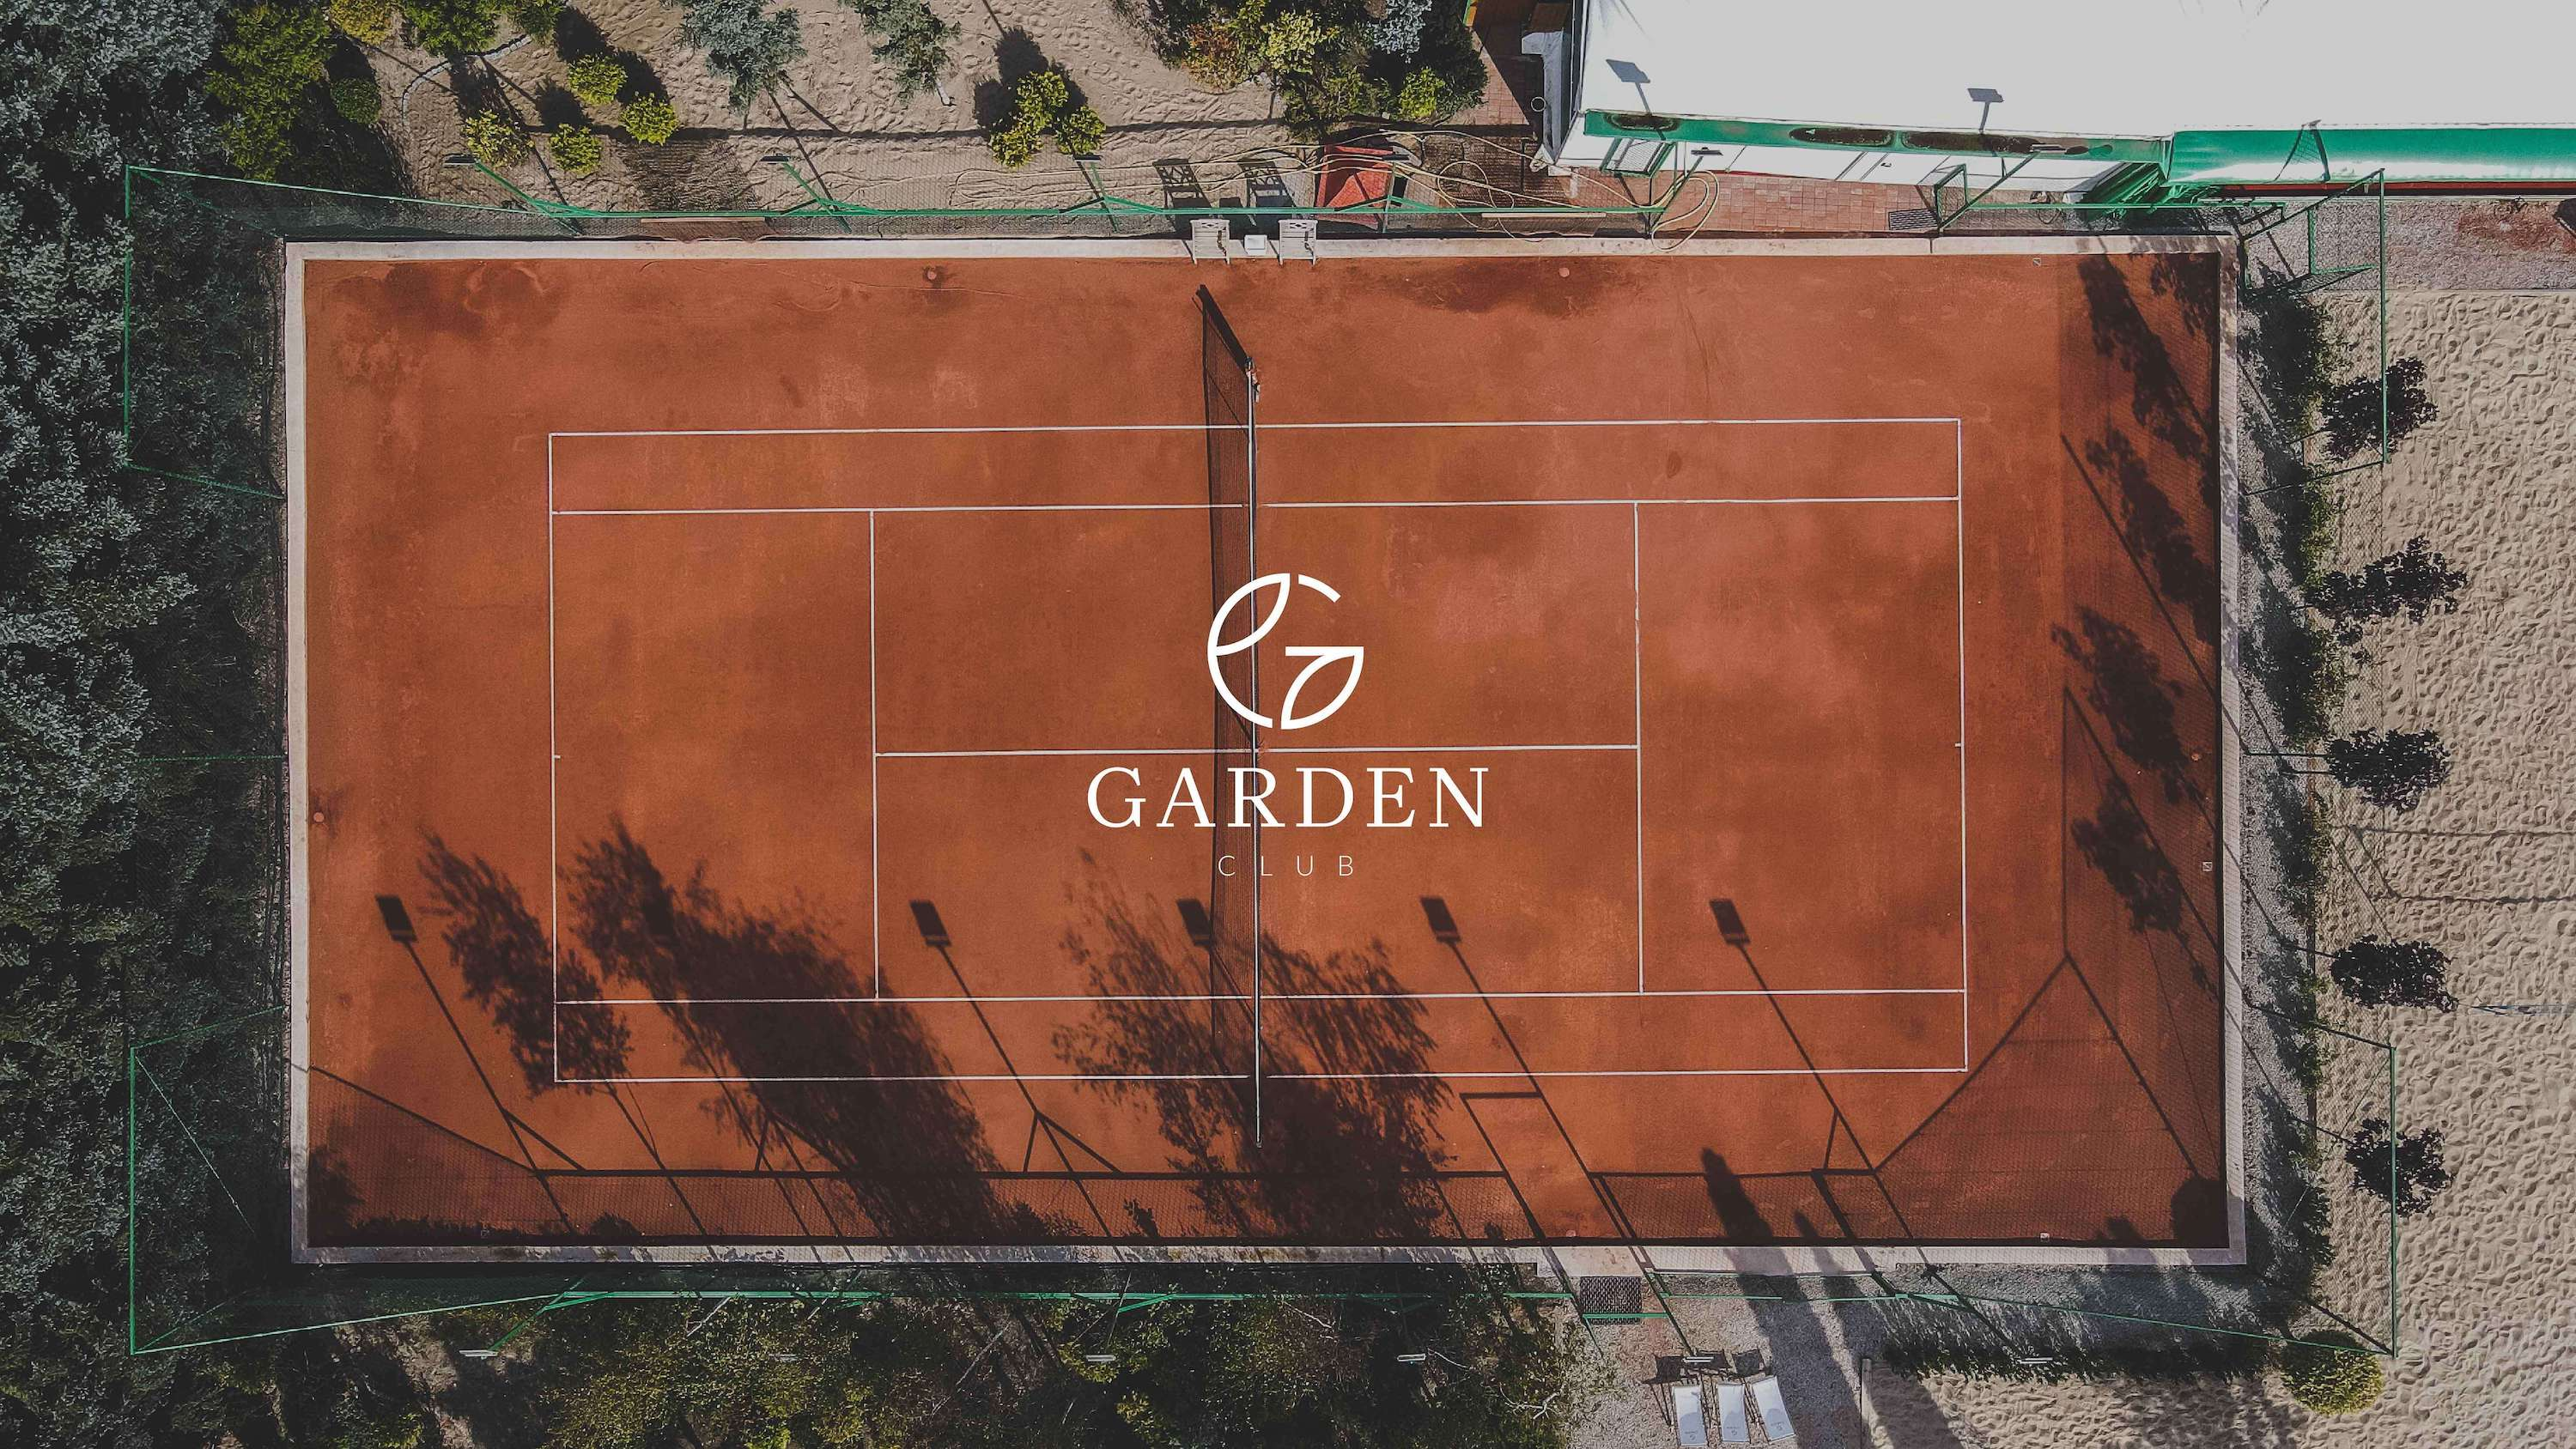 Garden Club Sports and Health Strategy and Branding